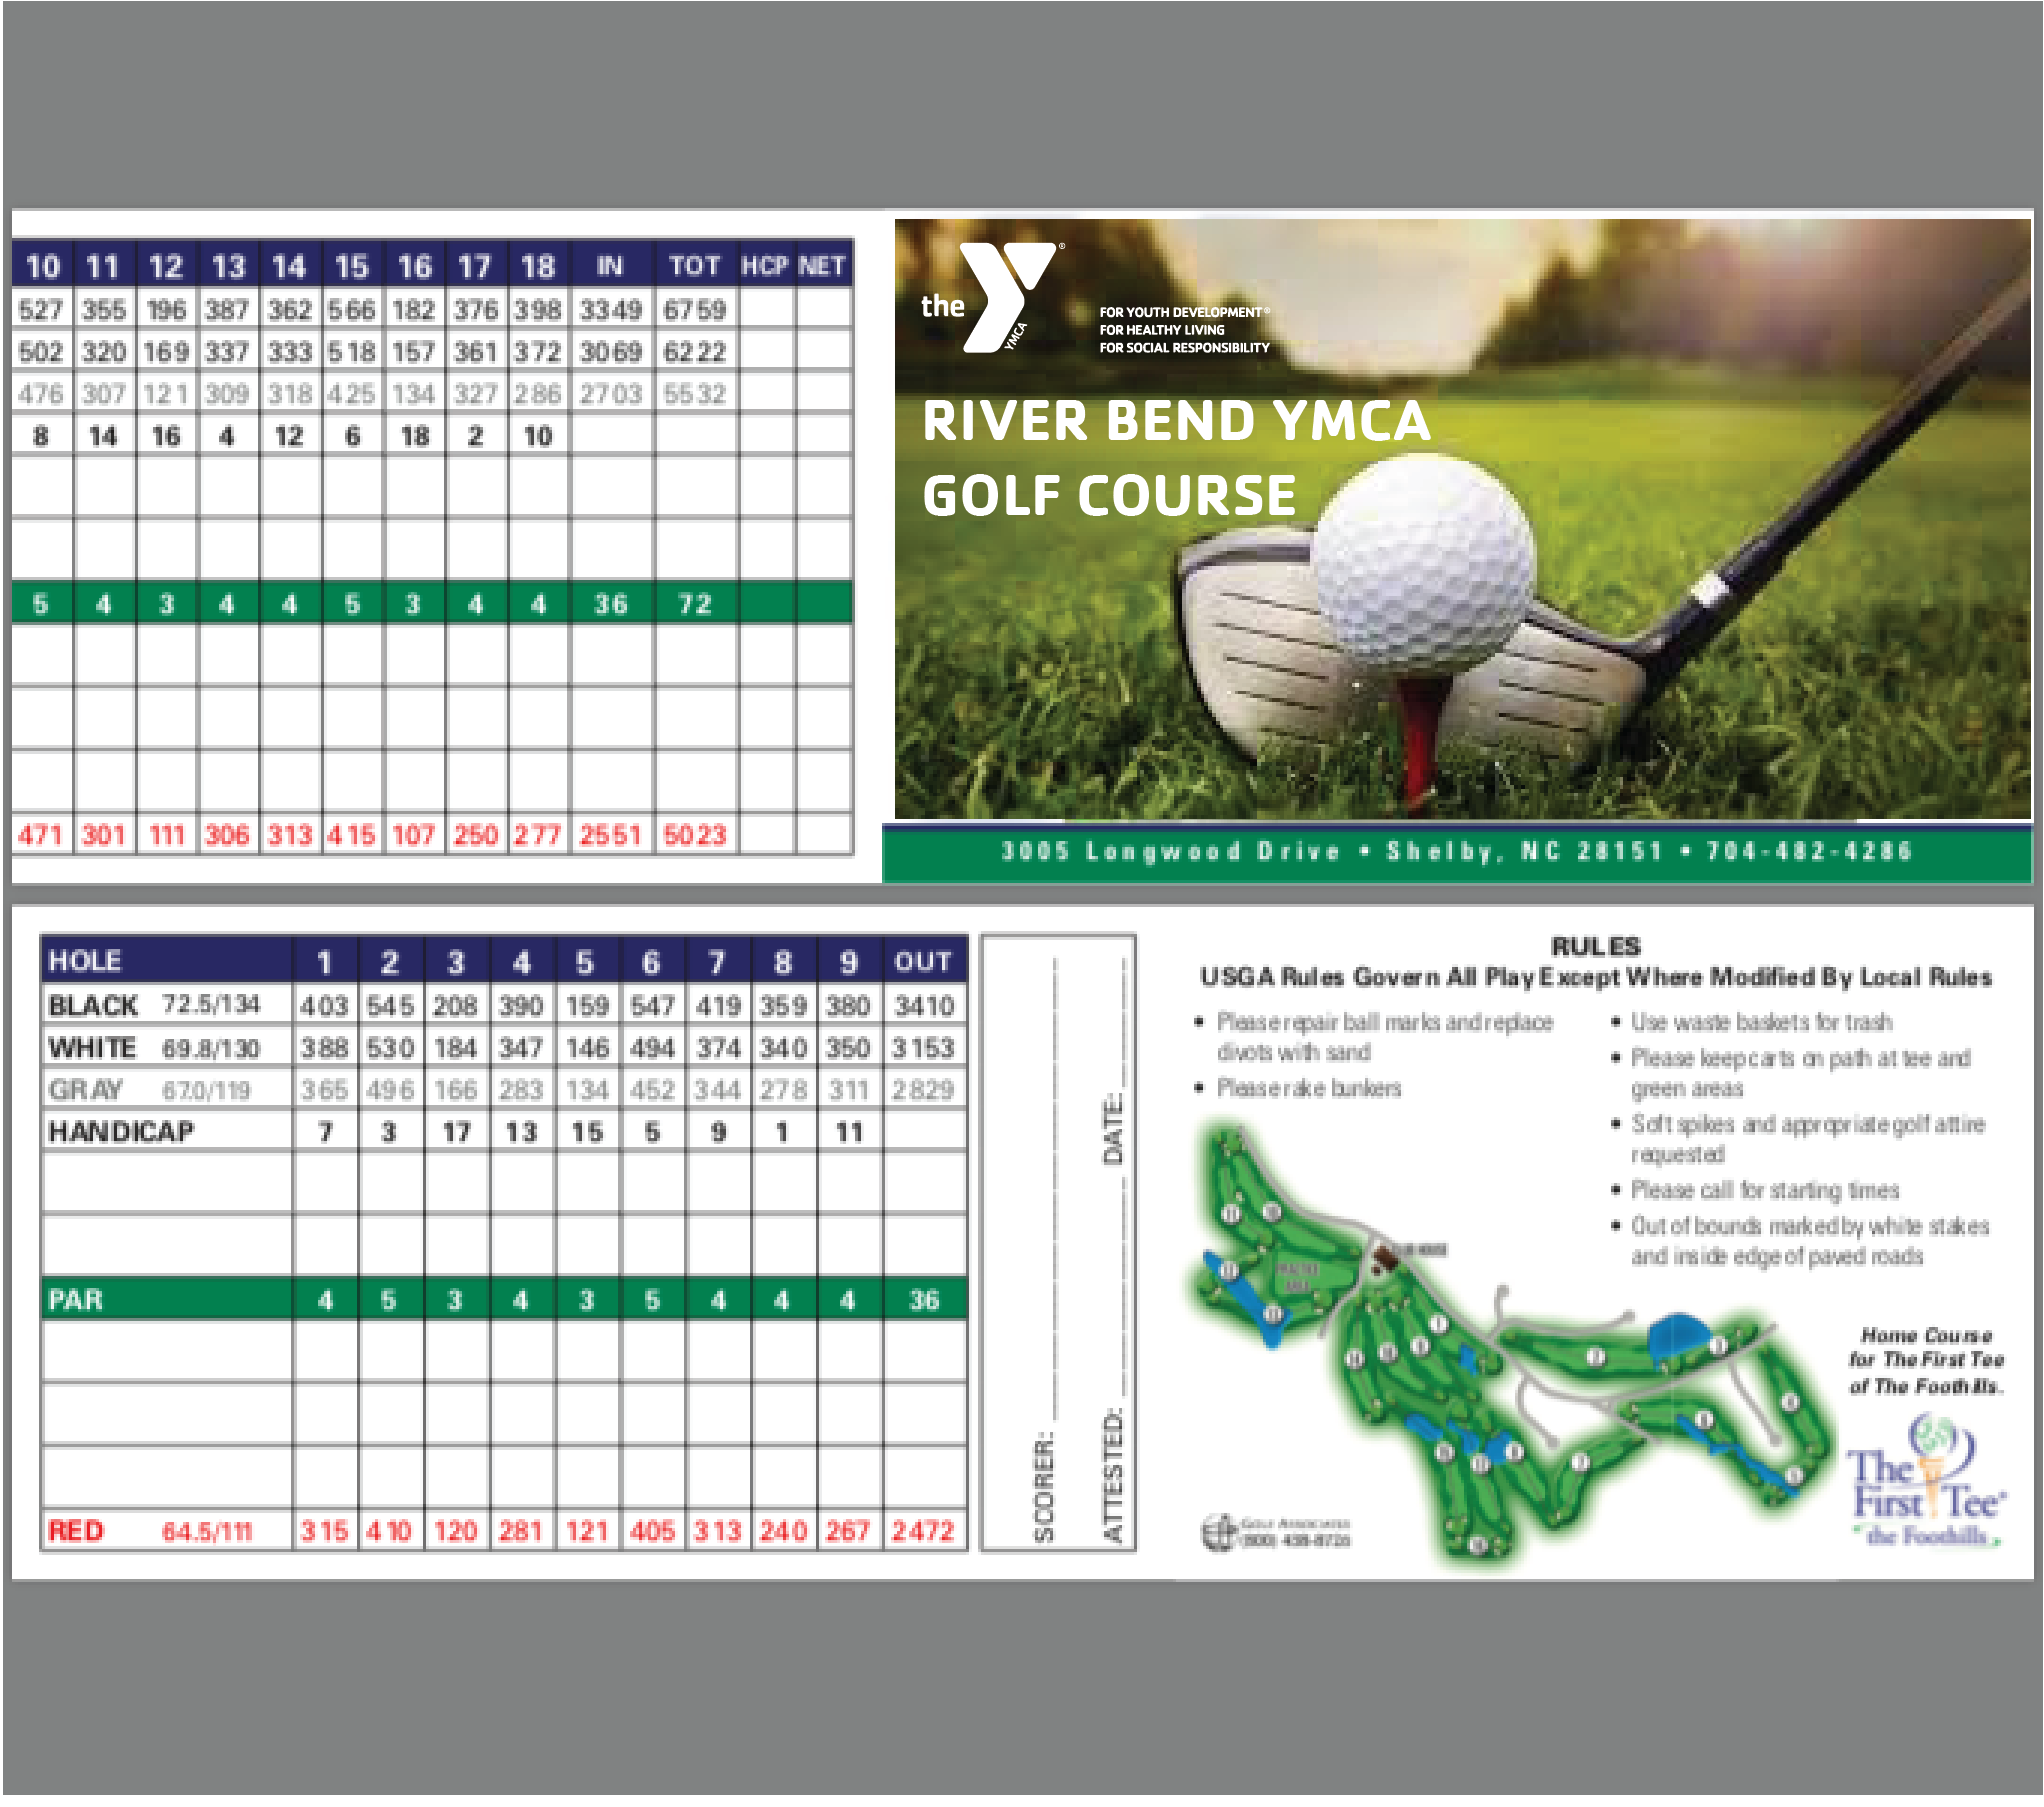 Scorecard - River Bend YMCA Golf Course